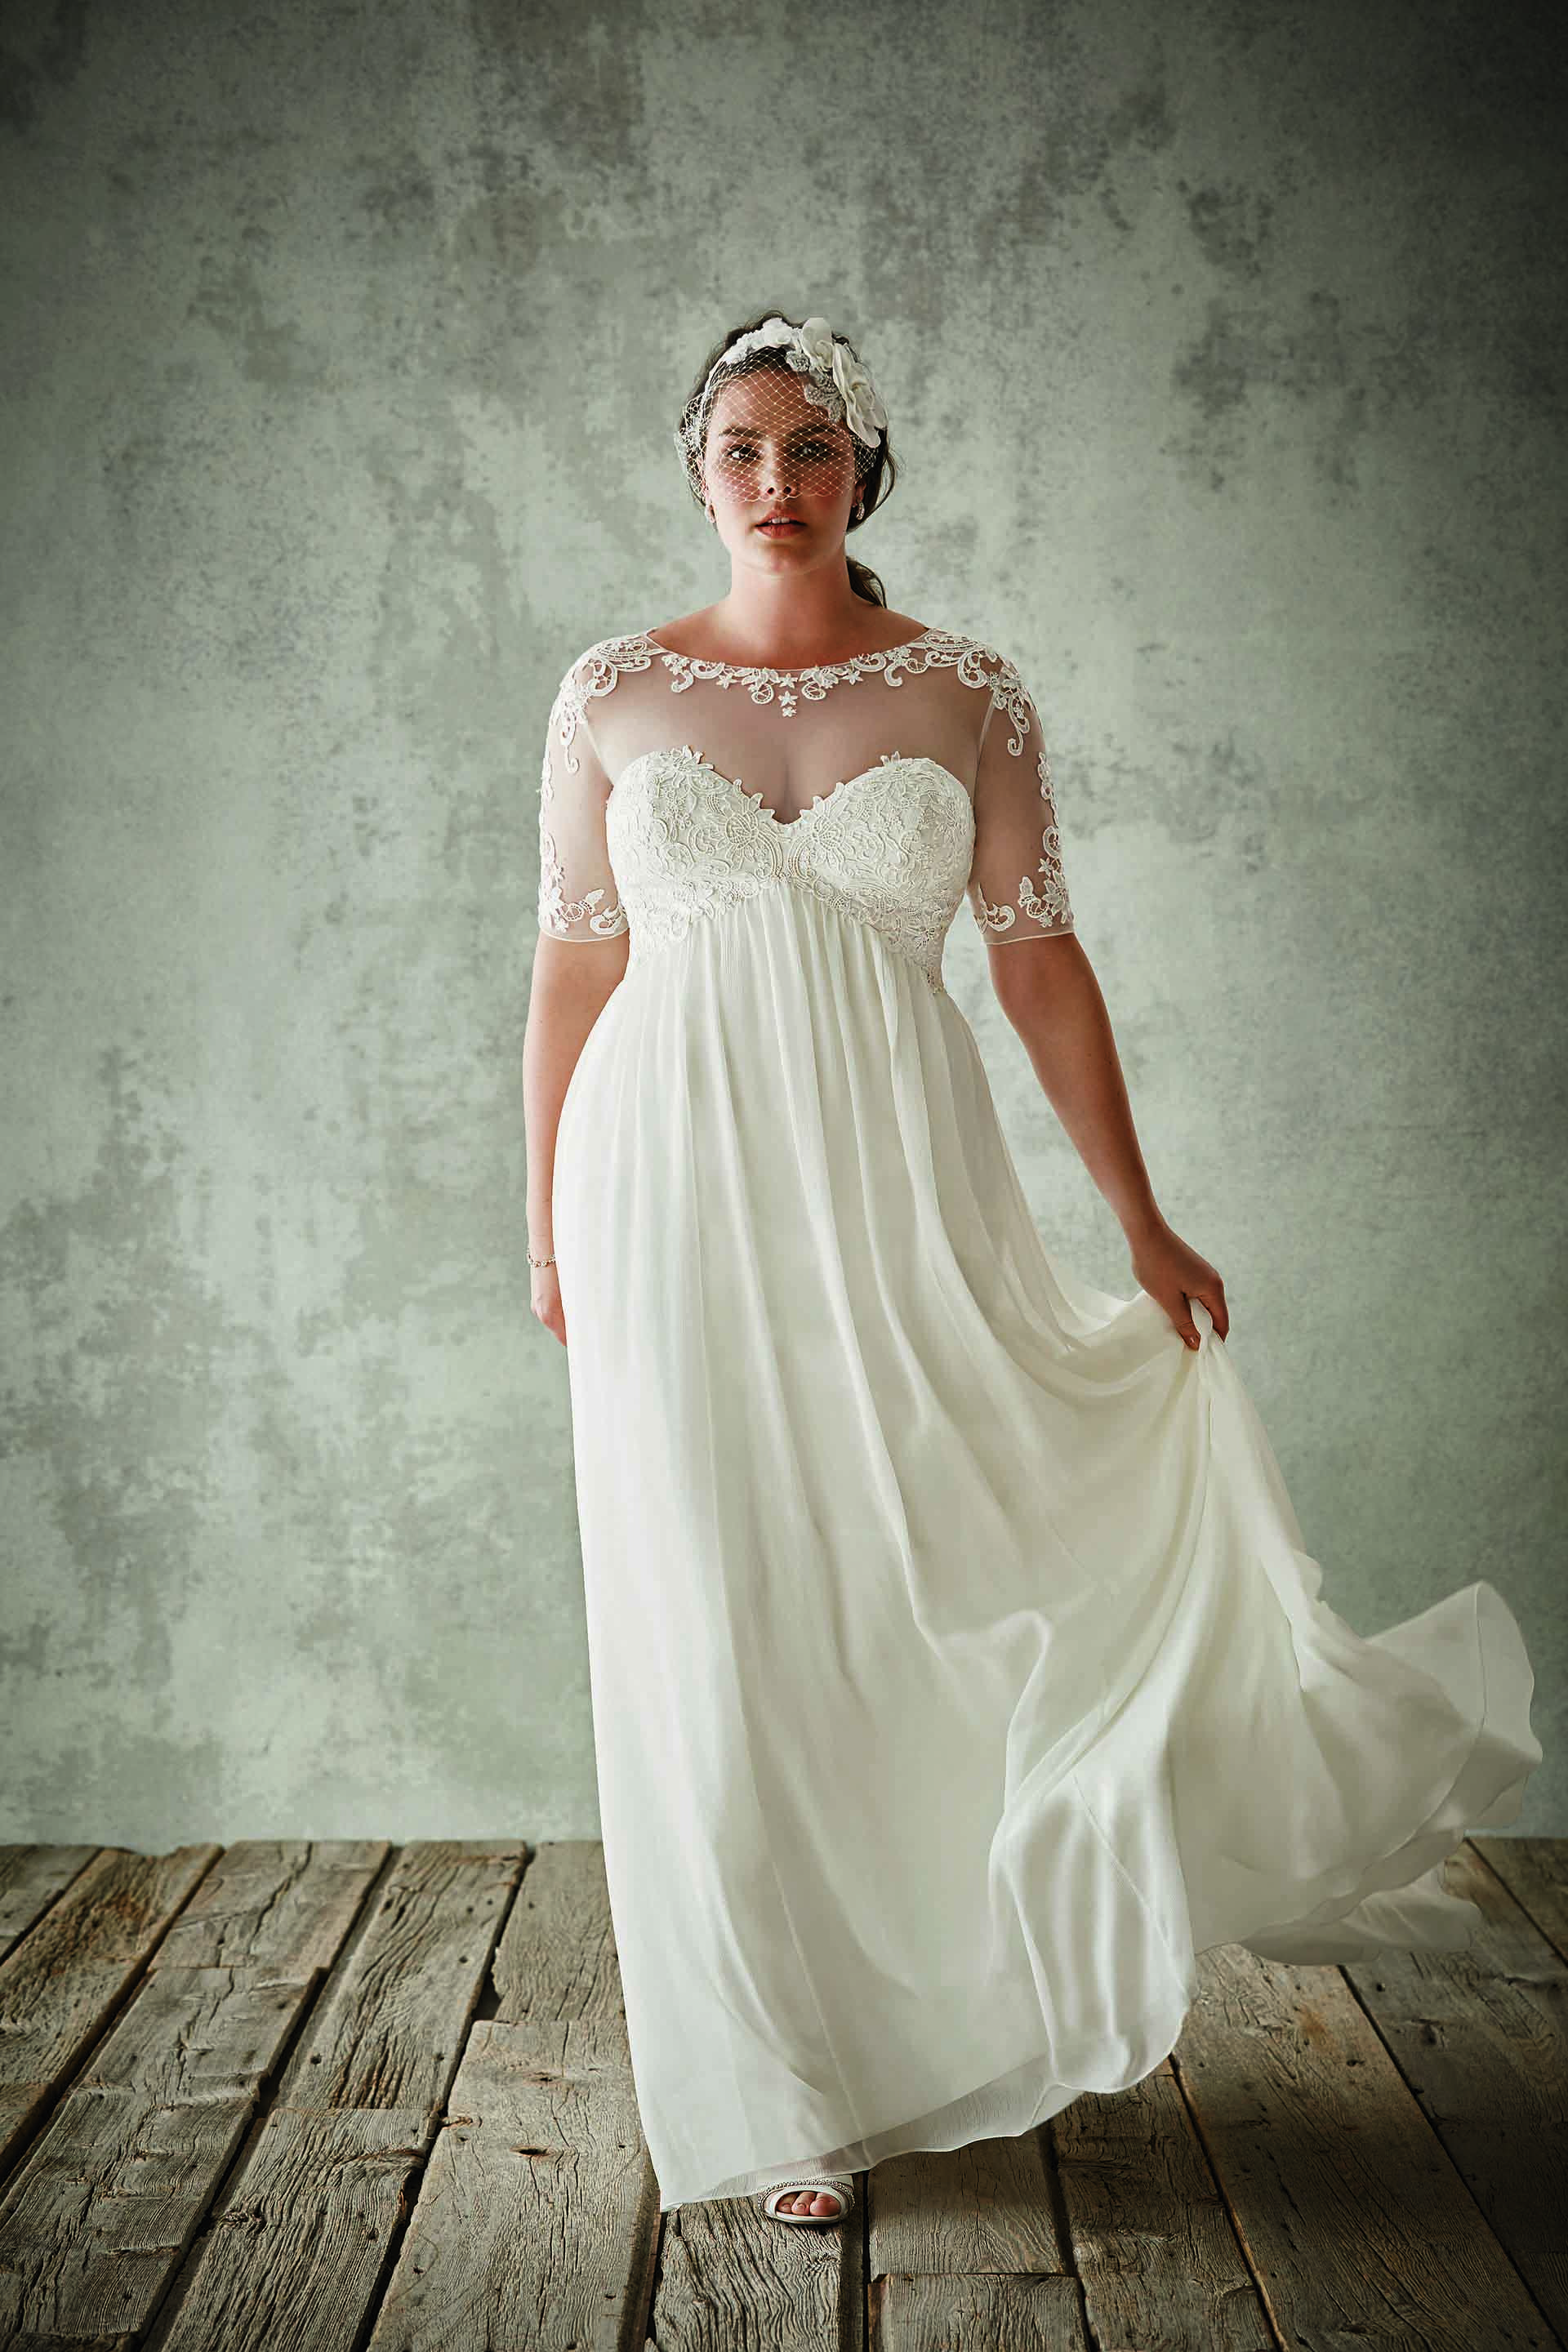 Empire waist wedding dresses long sleeves online empire waist fashion plus size wedding dresses with half sleeves sheer jewel neck a line lace appliqued bridal gowns chiffon empire waist wedding dress ombrellifo Images